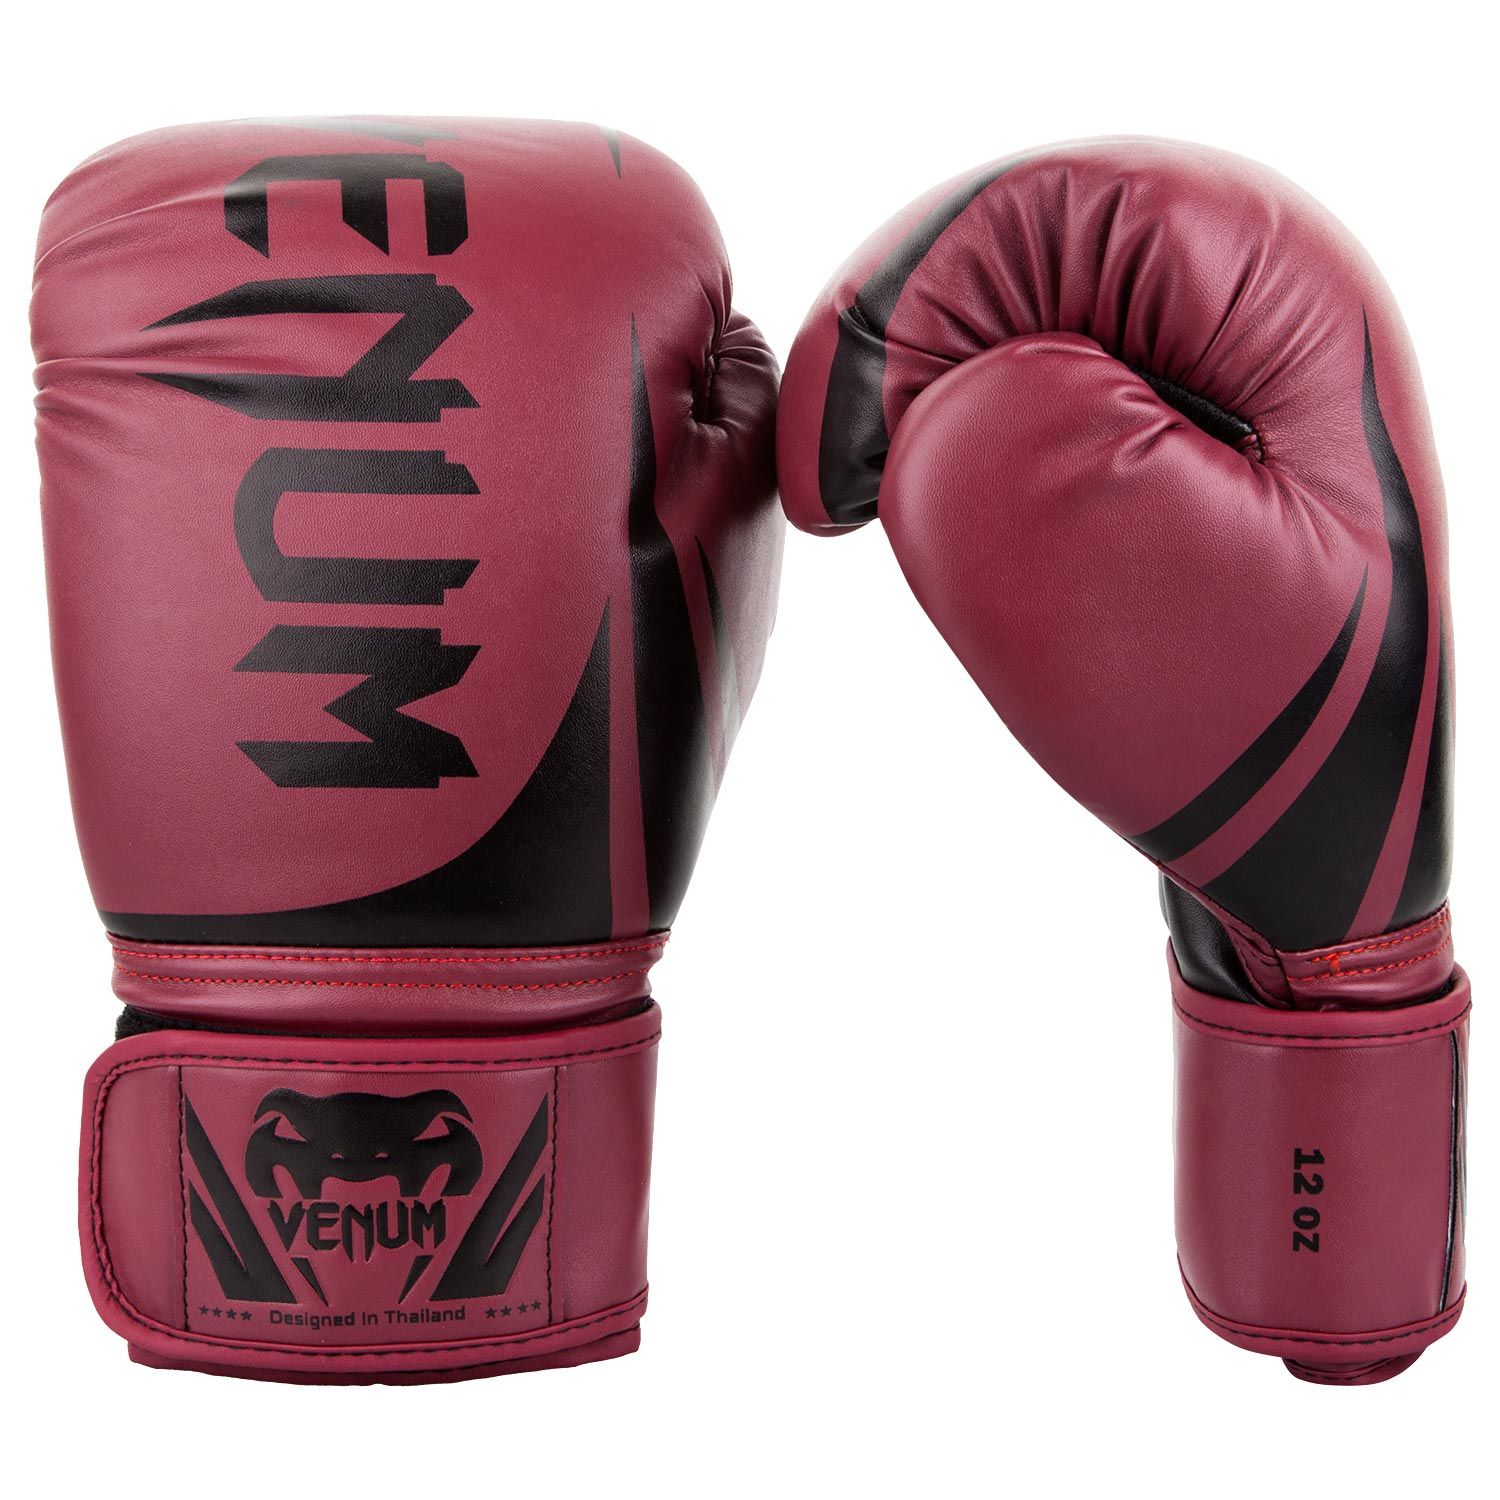 Venum Challenger 2.0 Boxing Gloves - Burgundy/Black